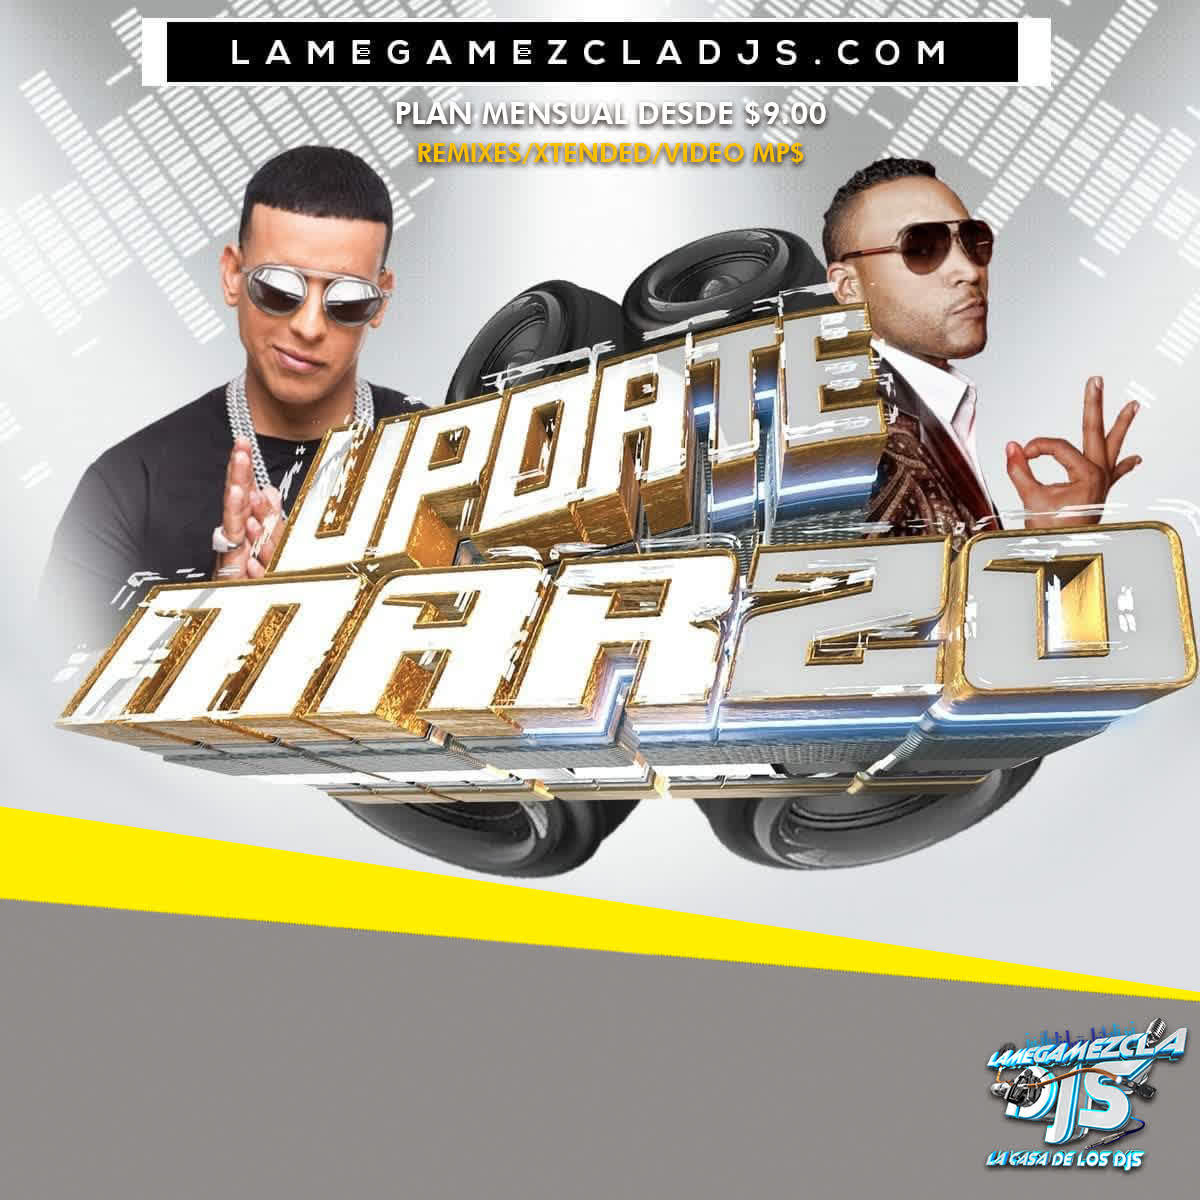 Los Dos Carnales - Home Run ( lamegamezcladjs.comInt & Out) 53 Bpm.